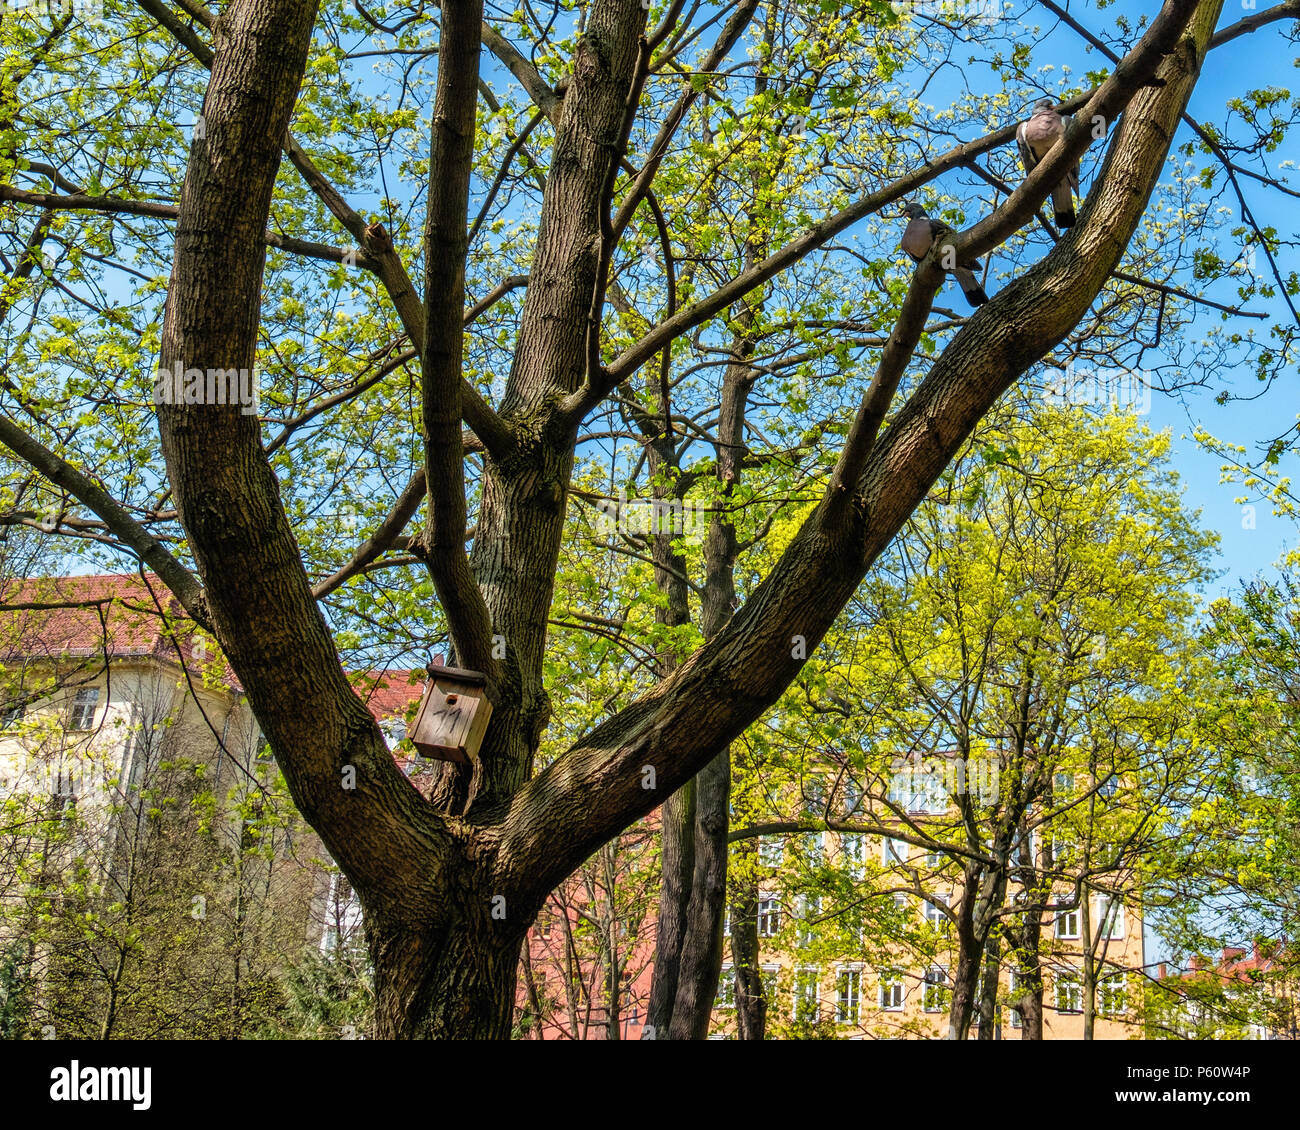 Berlin Prenzlauer Berg, Freidhof Pappelallee, Cemetery Park is a listed closed cemetery.two pigeons & bird nesting box in tree in old grave yard - Stock Image